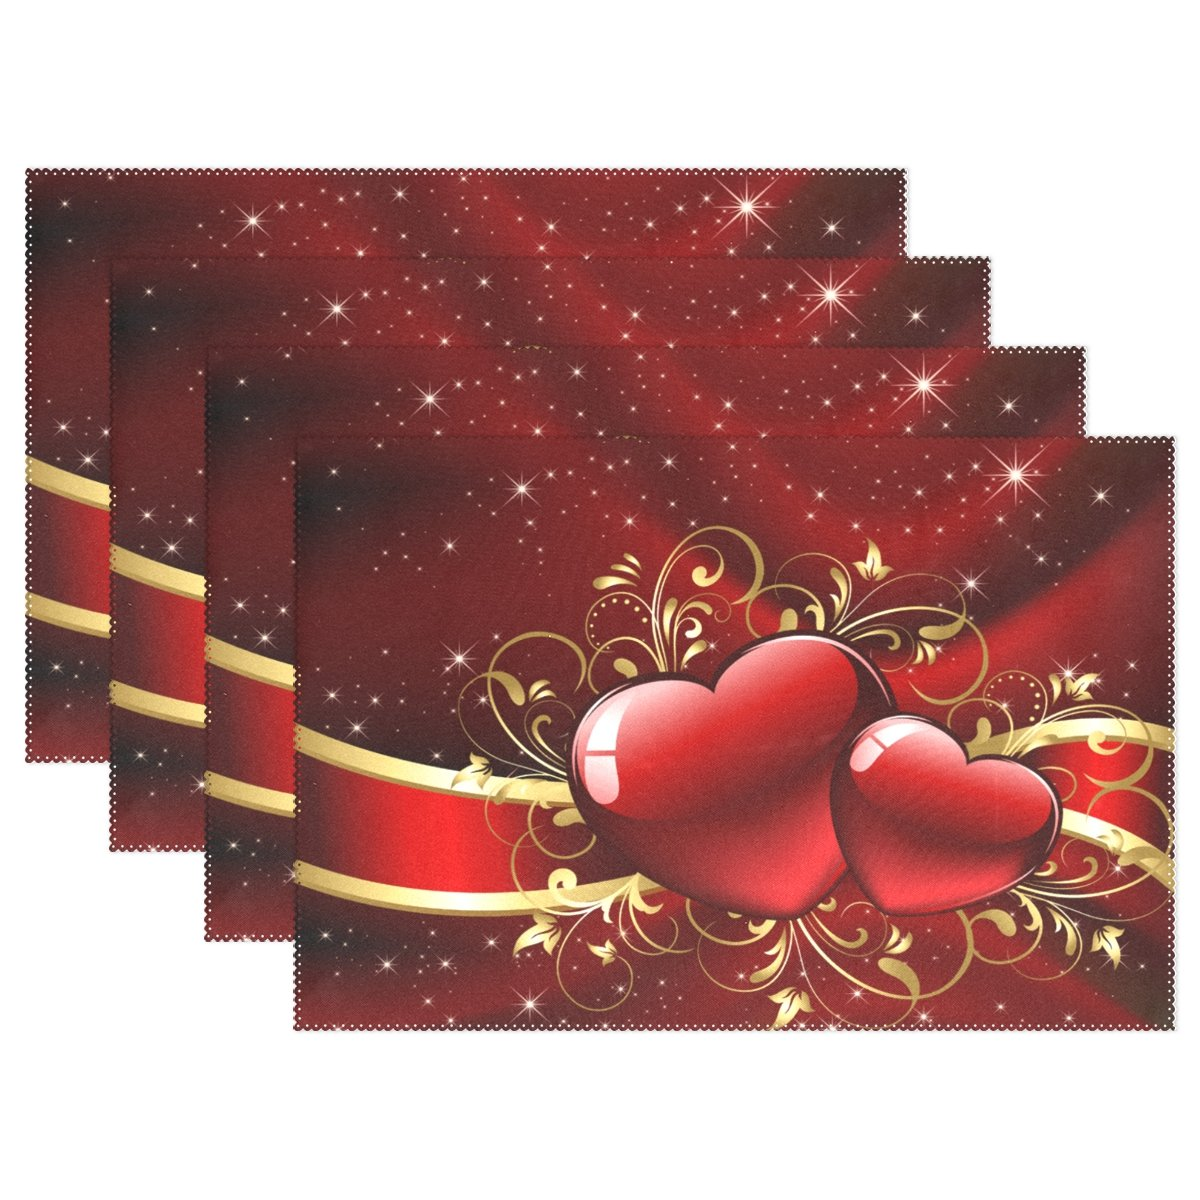 Gorgeous Valentines Day with Red Hearts Heat-Resistant Table Placemats Set of 6 Stain Resistant Table Mats Washable Eat Mat for Parties Everyday & Holidays Use